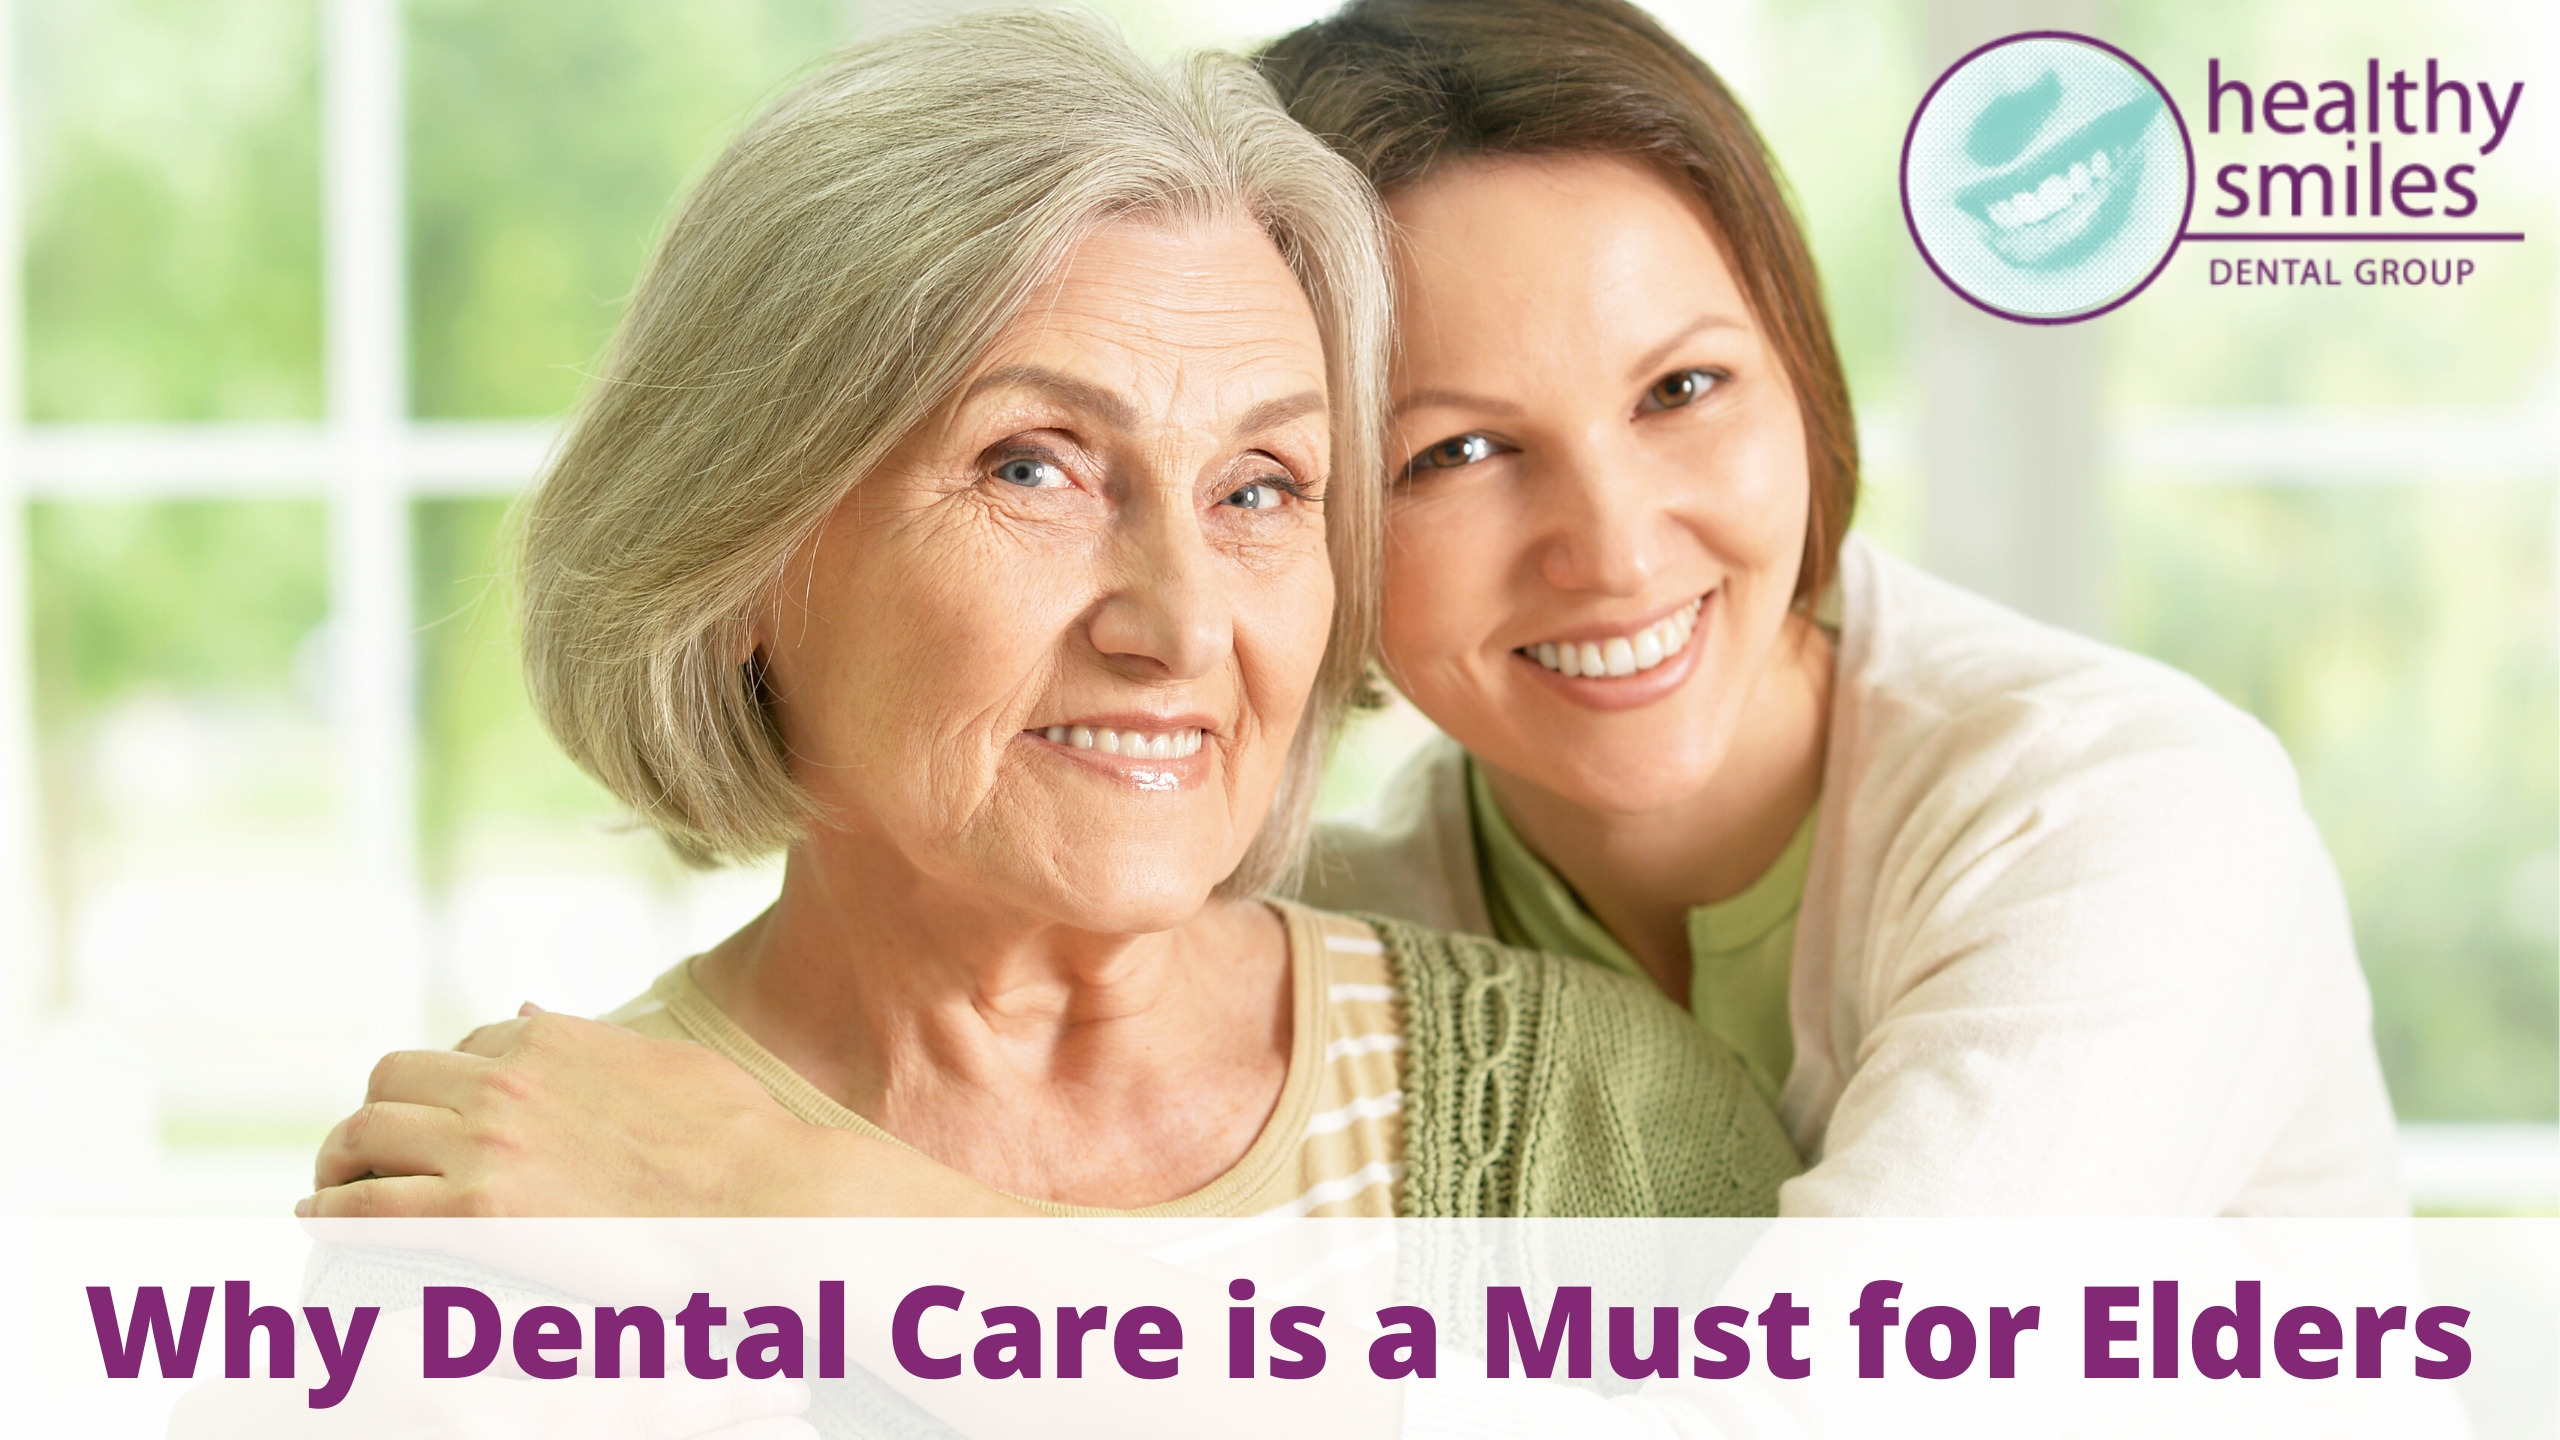 5 Reasons Why Dental Care is a Must for Elders